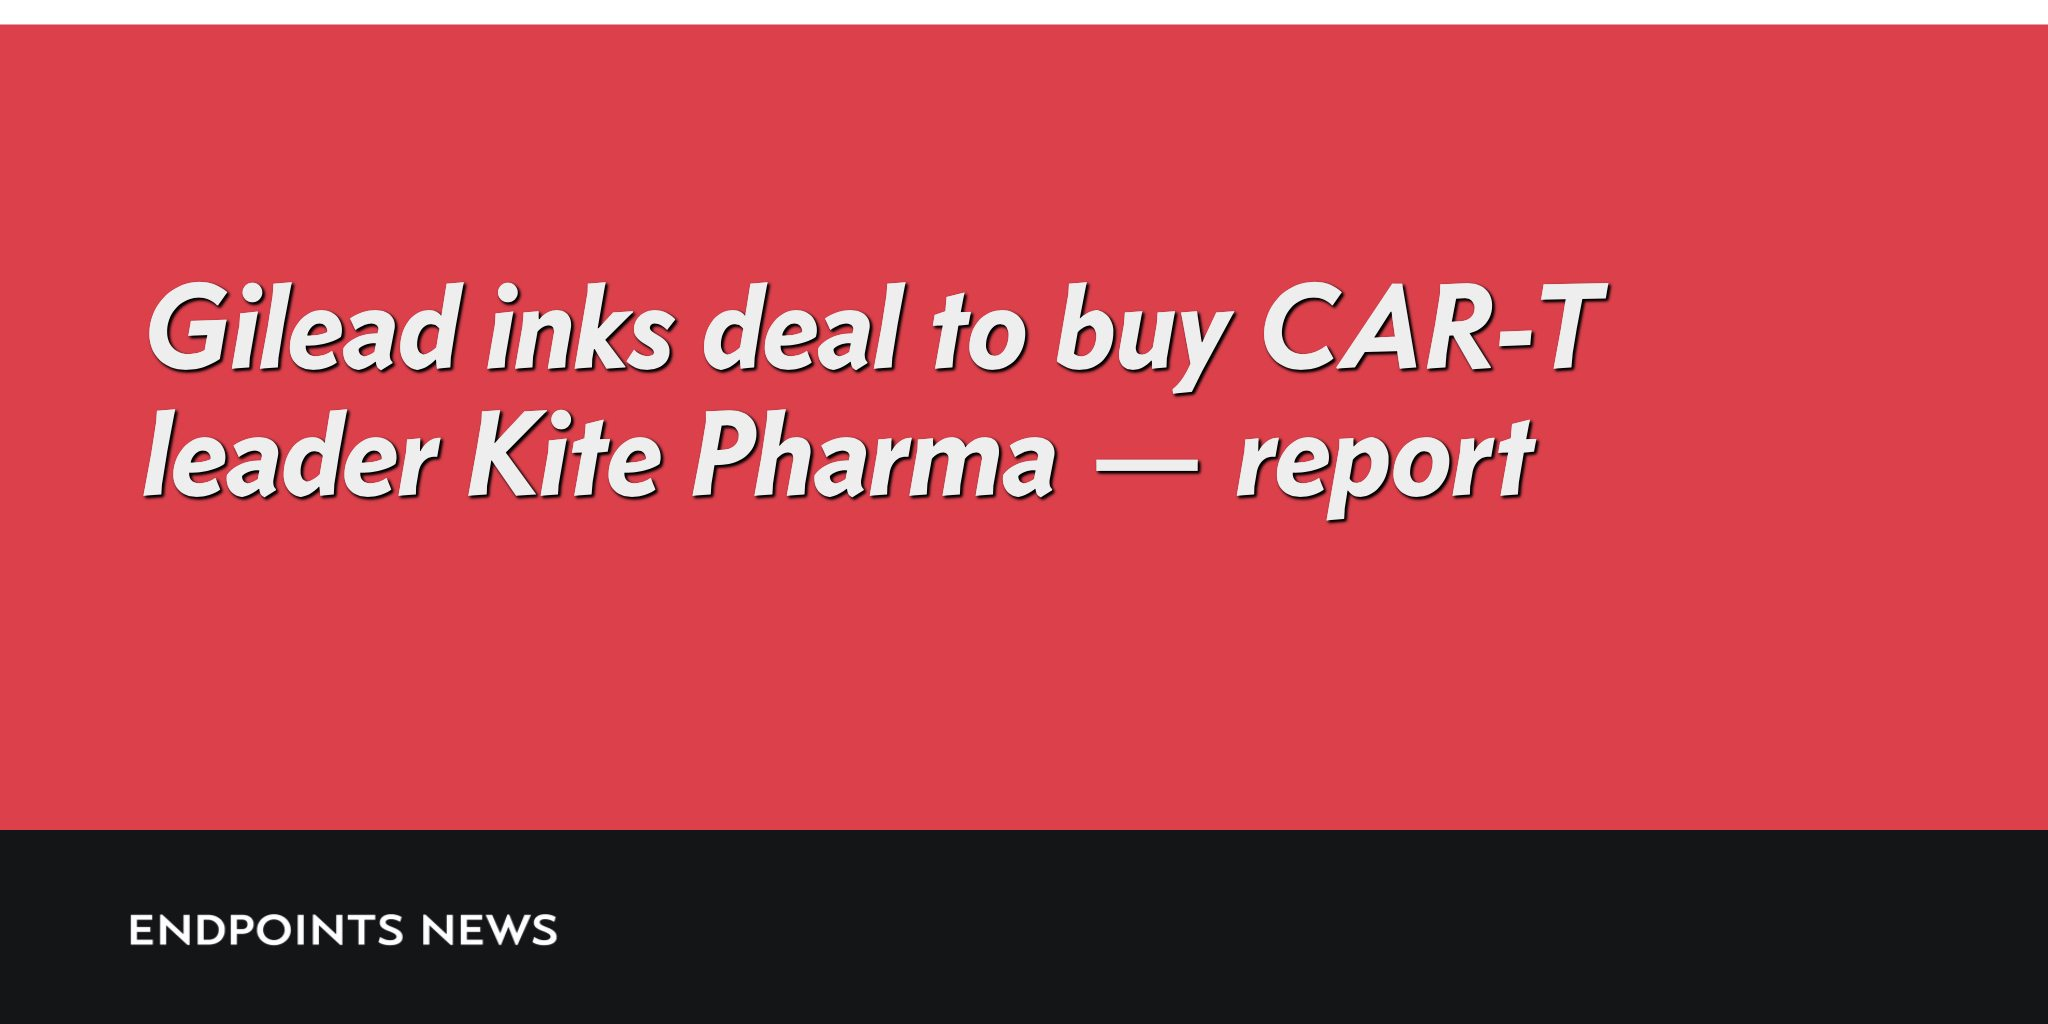 Gilead Sciences acquires Kite Pharma for $11.9-bn in cash